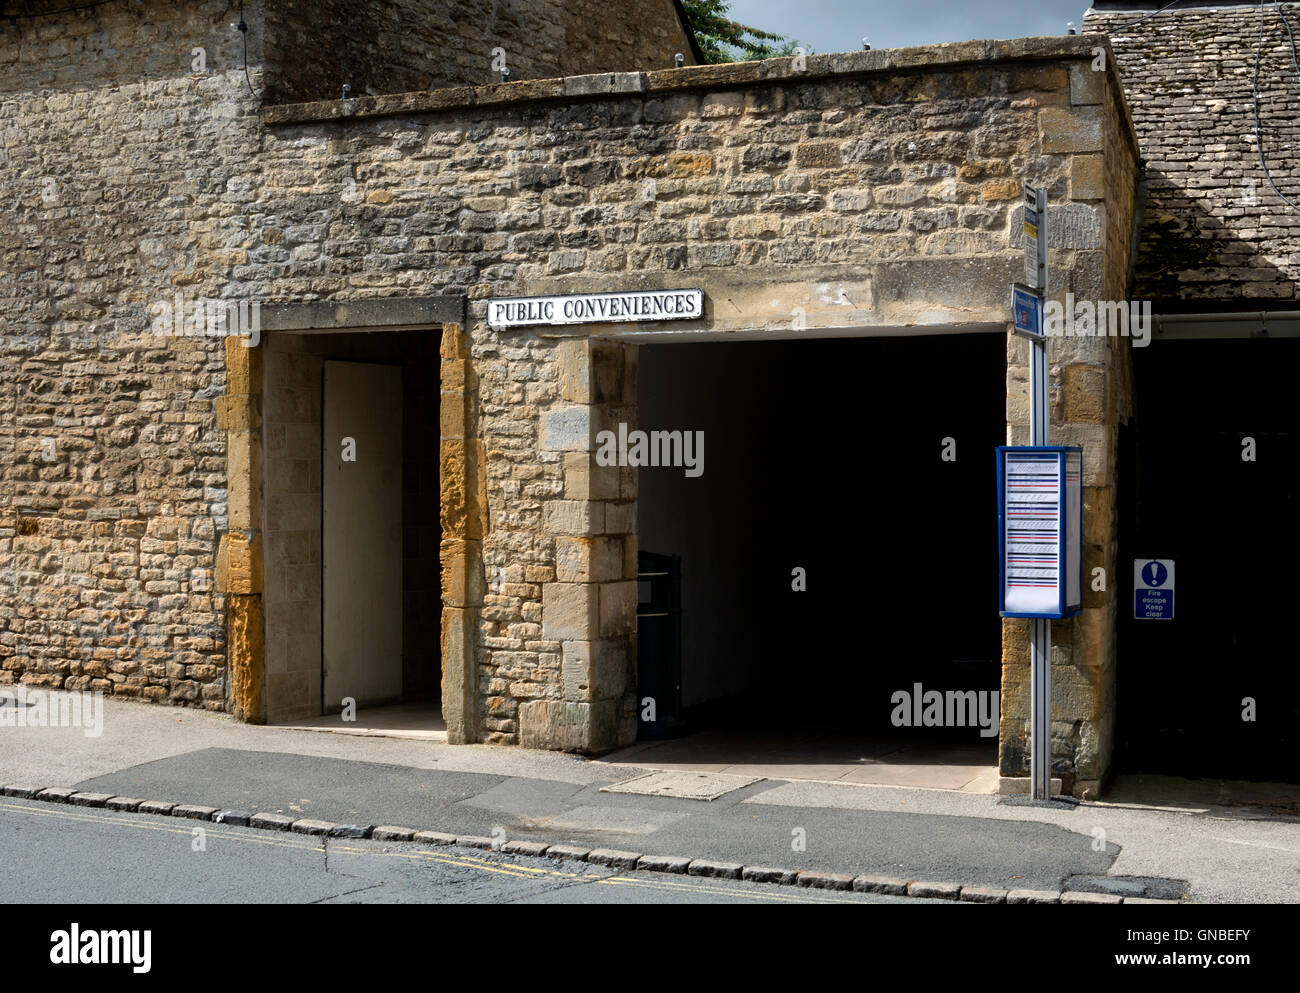 Public toilets, Stow-on-the-Wold, Gloucestershire, England, UK - Stock Image